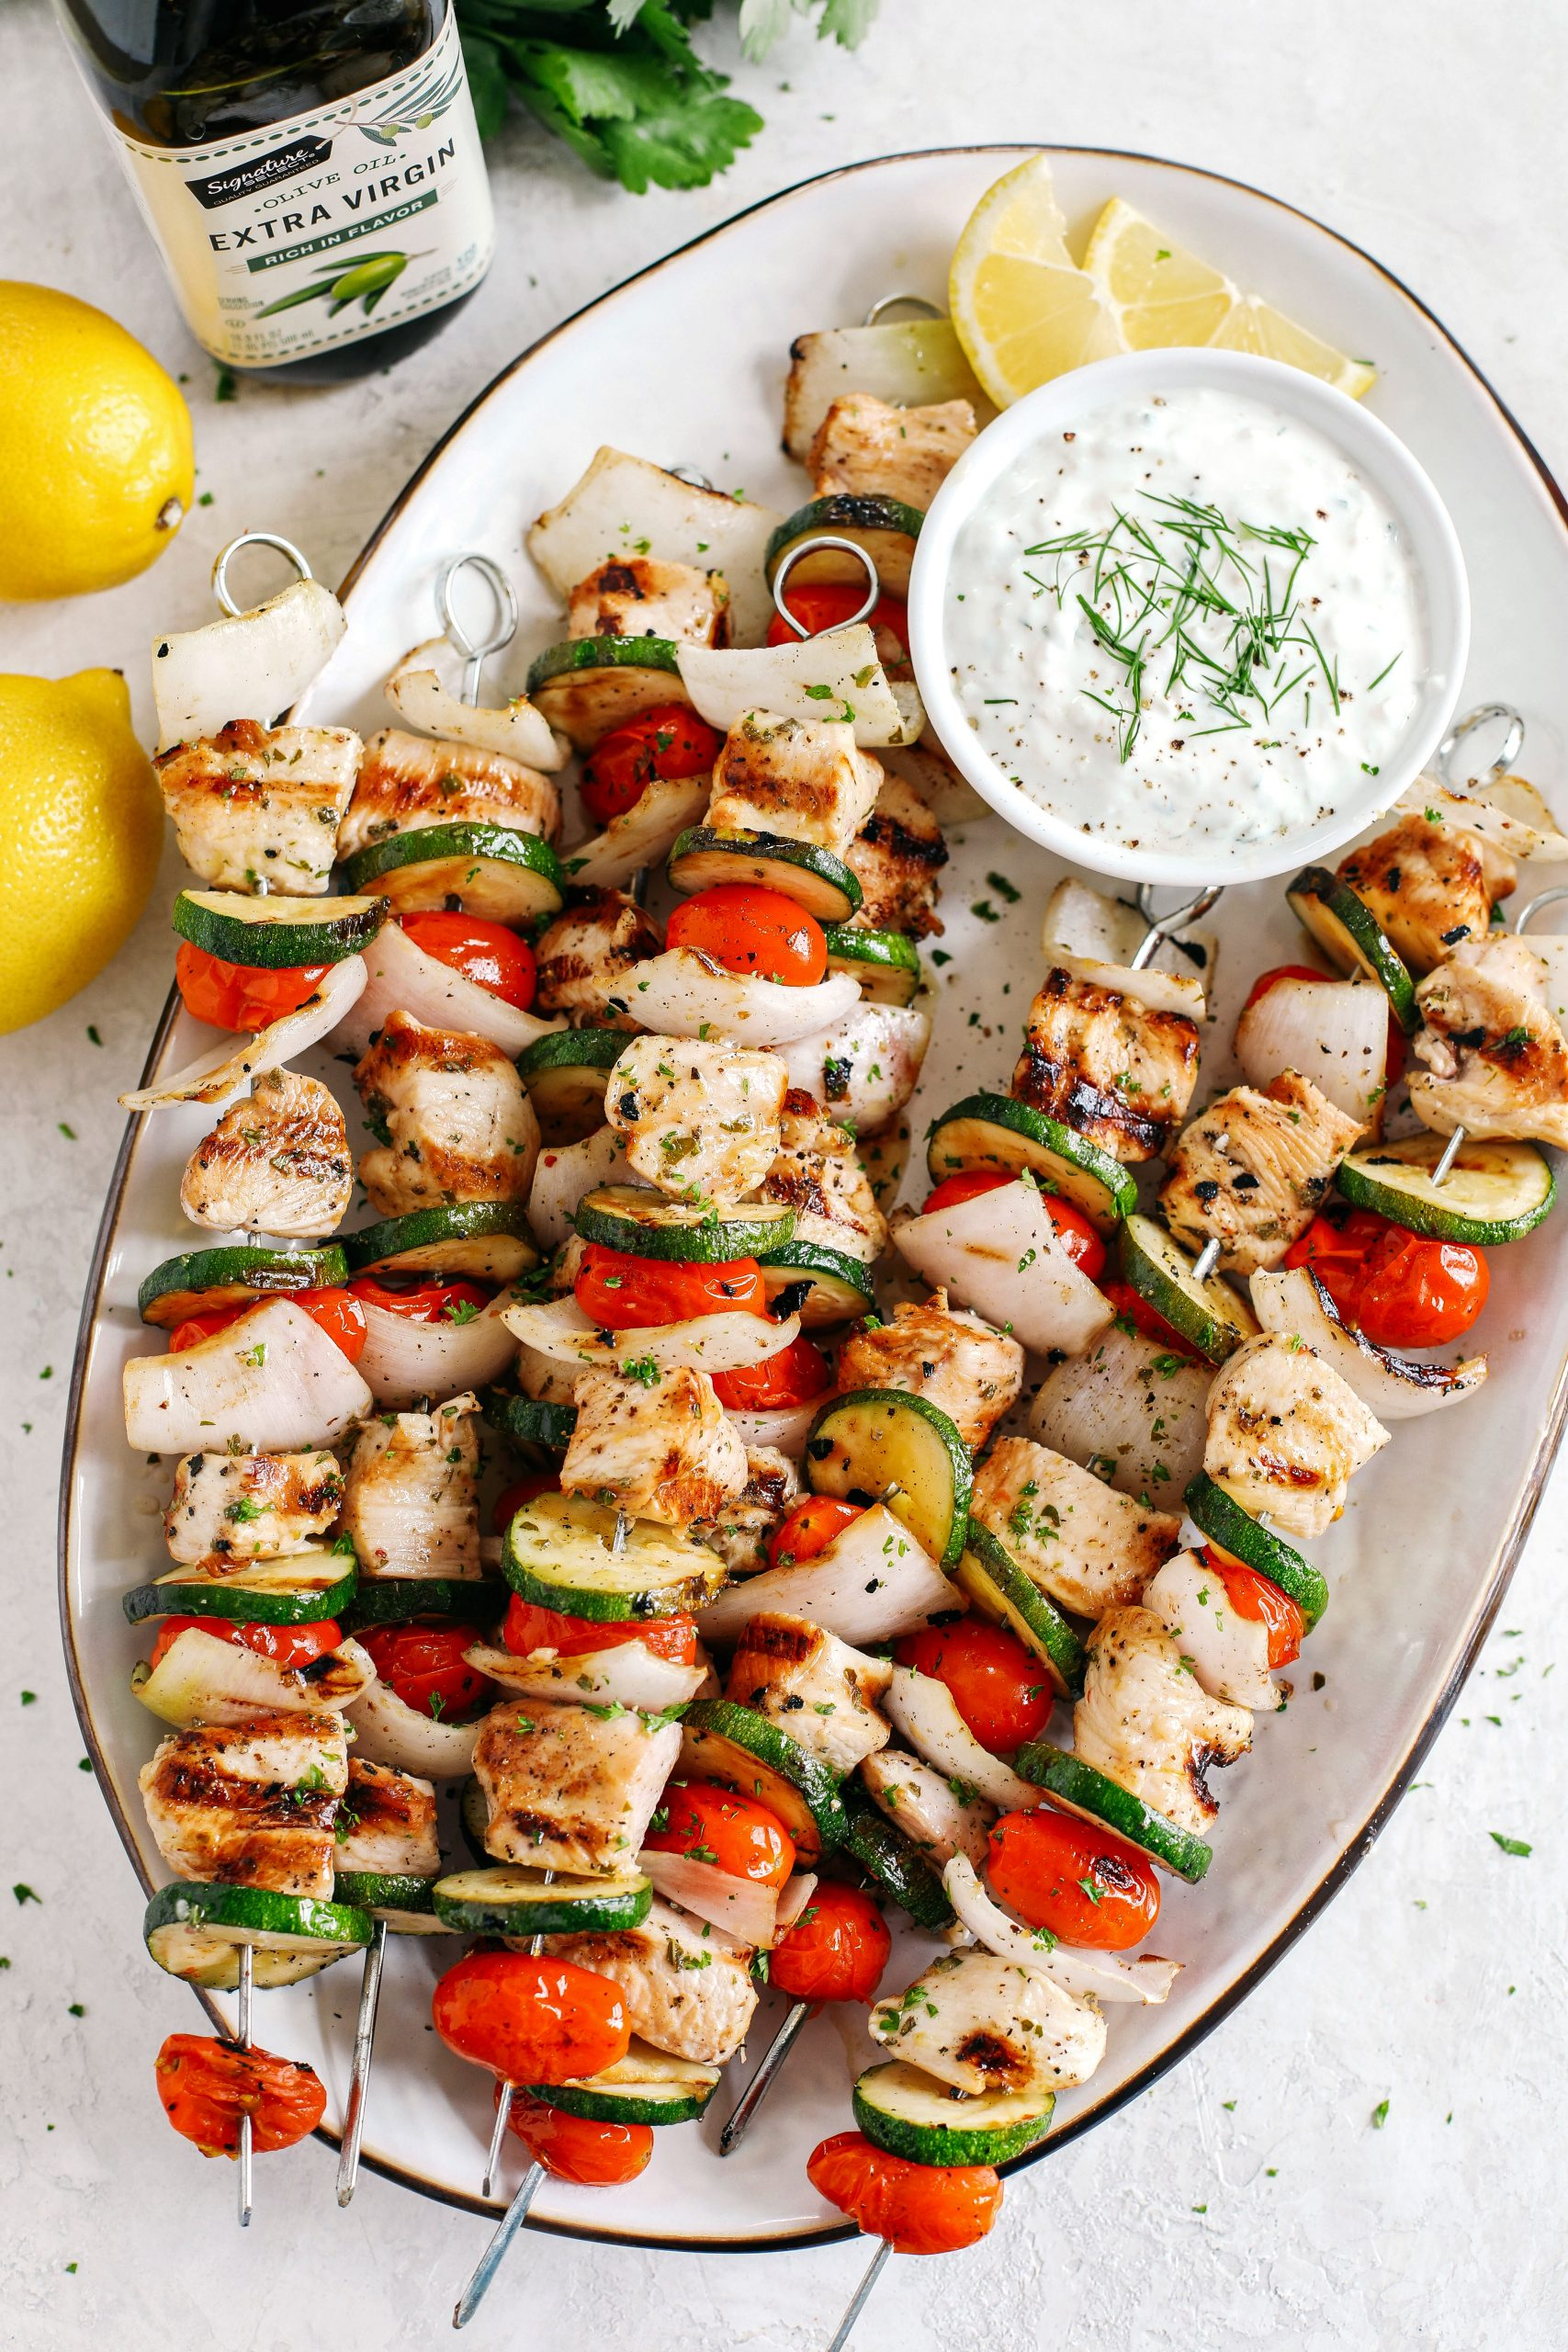 Super flavorful Greek Chicken Kabobs marinated with zesty lemon juice, garlic and fresh herbs and served with the most delicious homemade tzatziki dipping sauce!